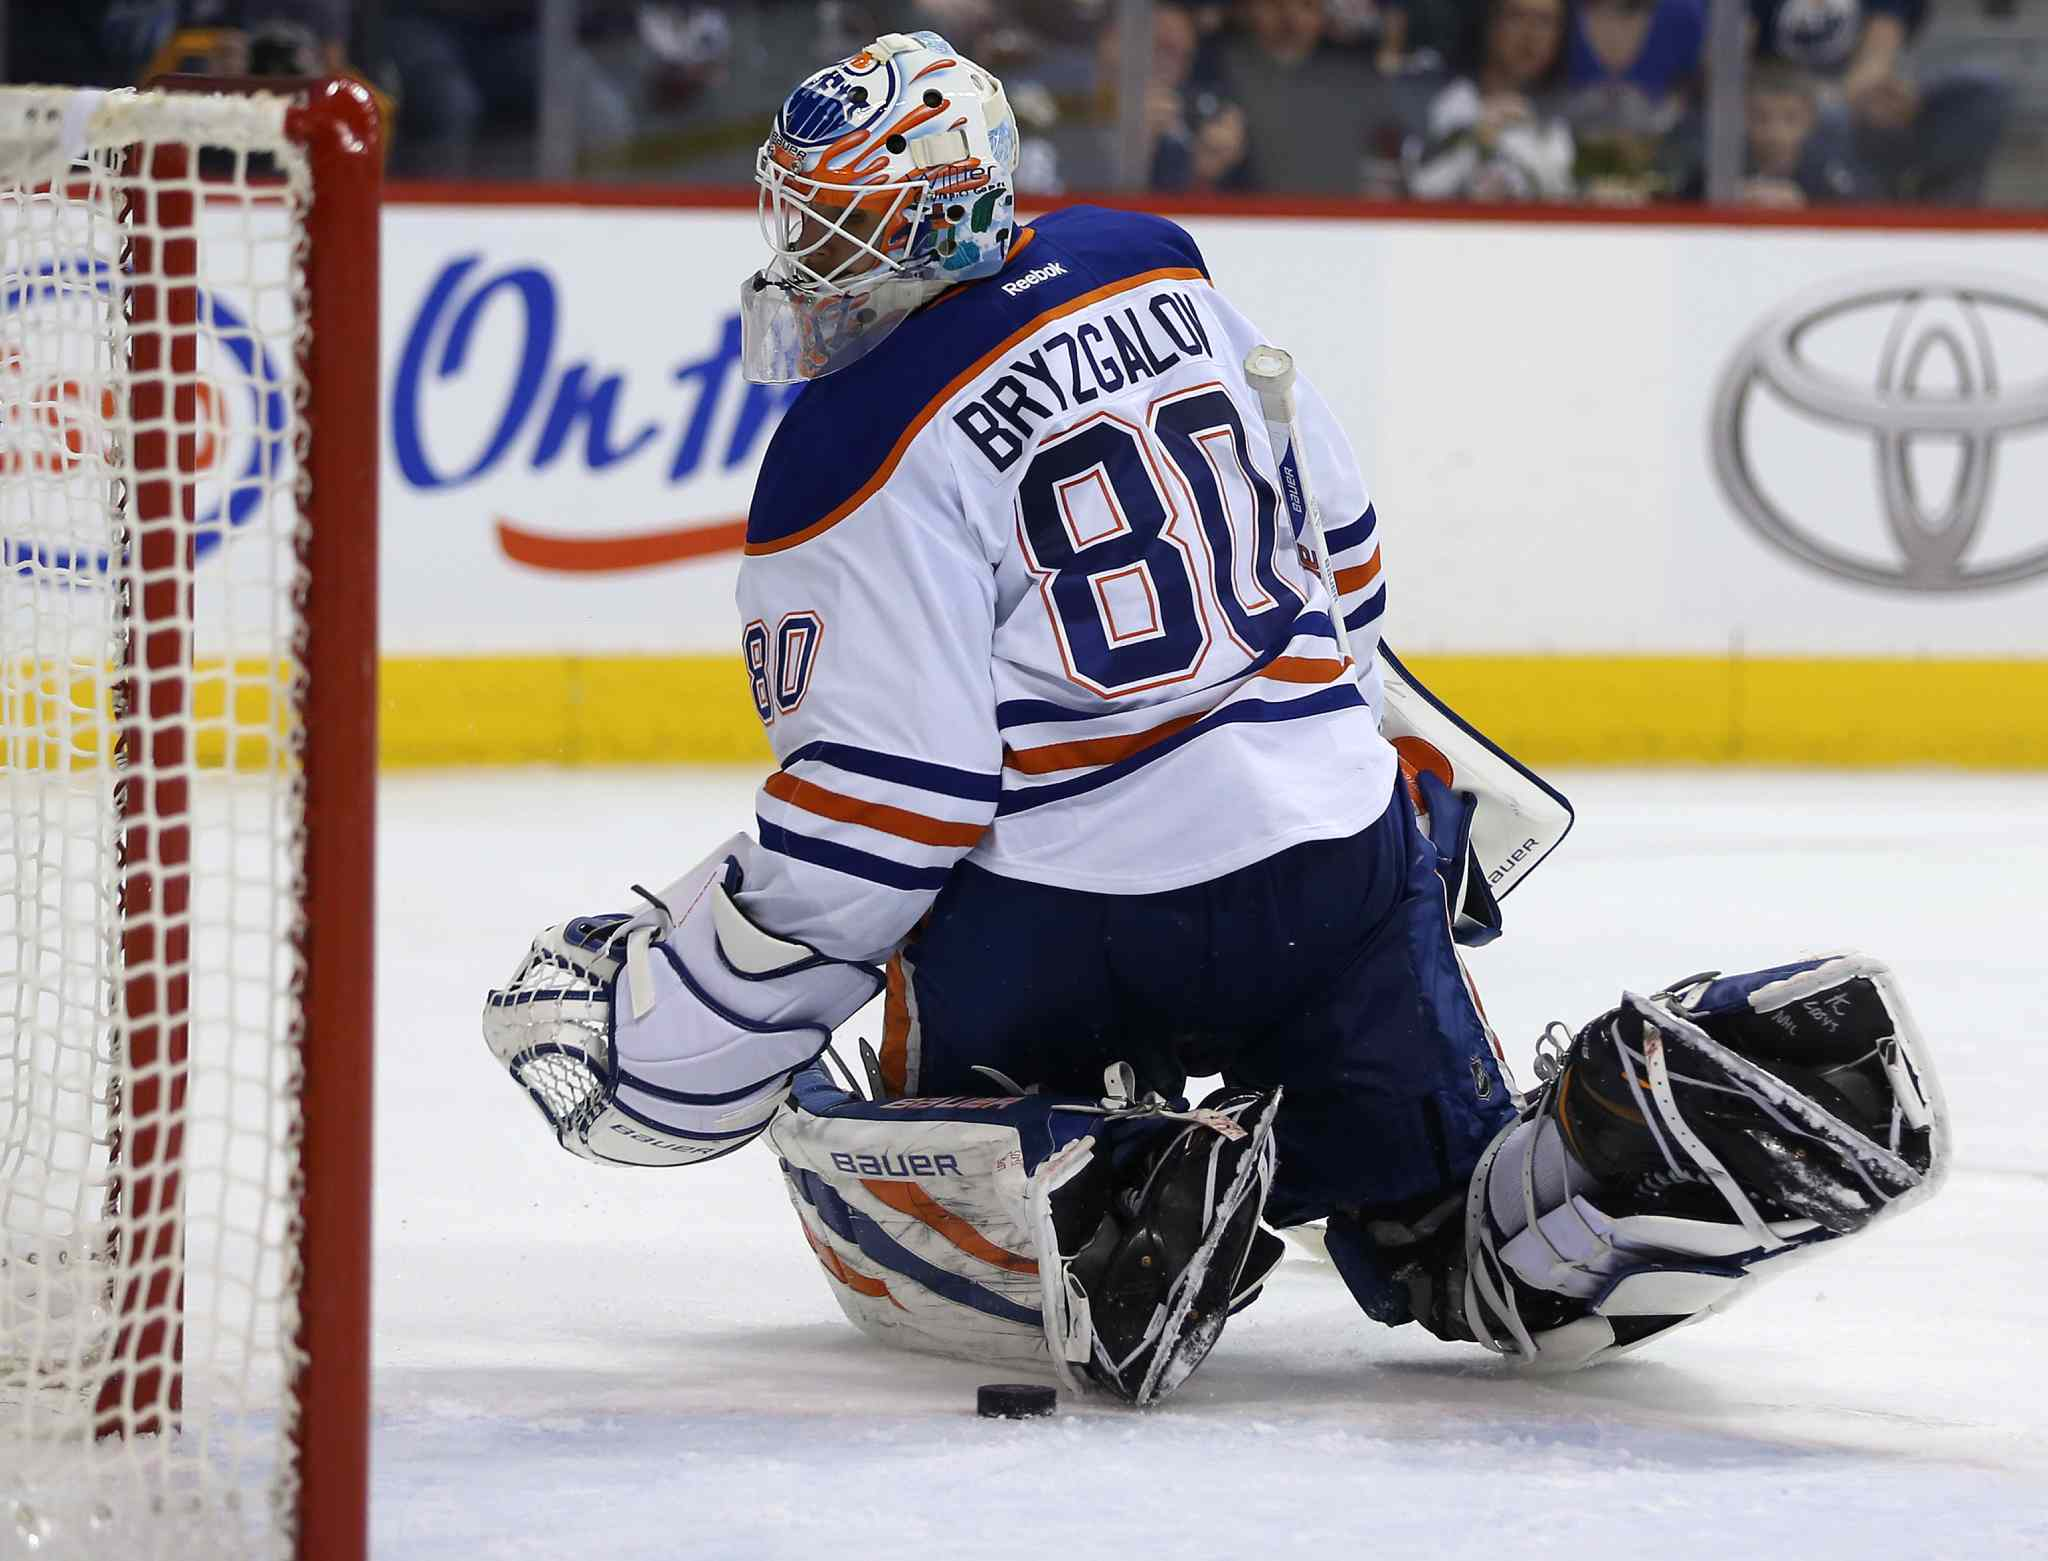 Edmonton Oilers' goaltender Ilya Bryzgalov makes an uncertain save on a drive by Winnipeg Jets' Dustin Byfuglien (33) in the second period of Saturday's NHL hockey game in Winnipeg.